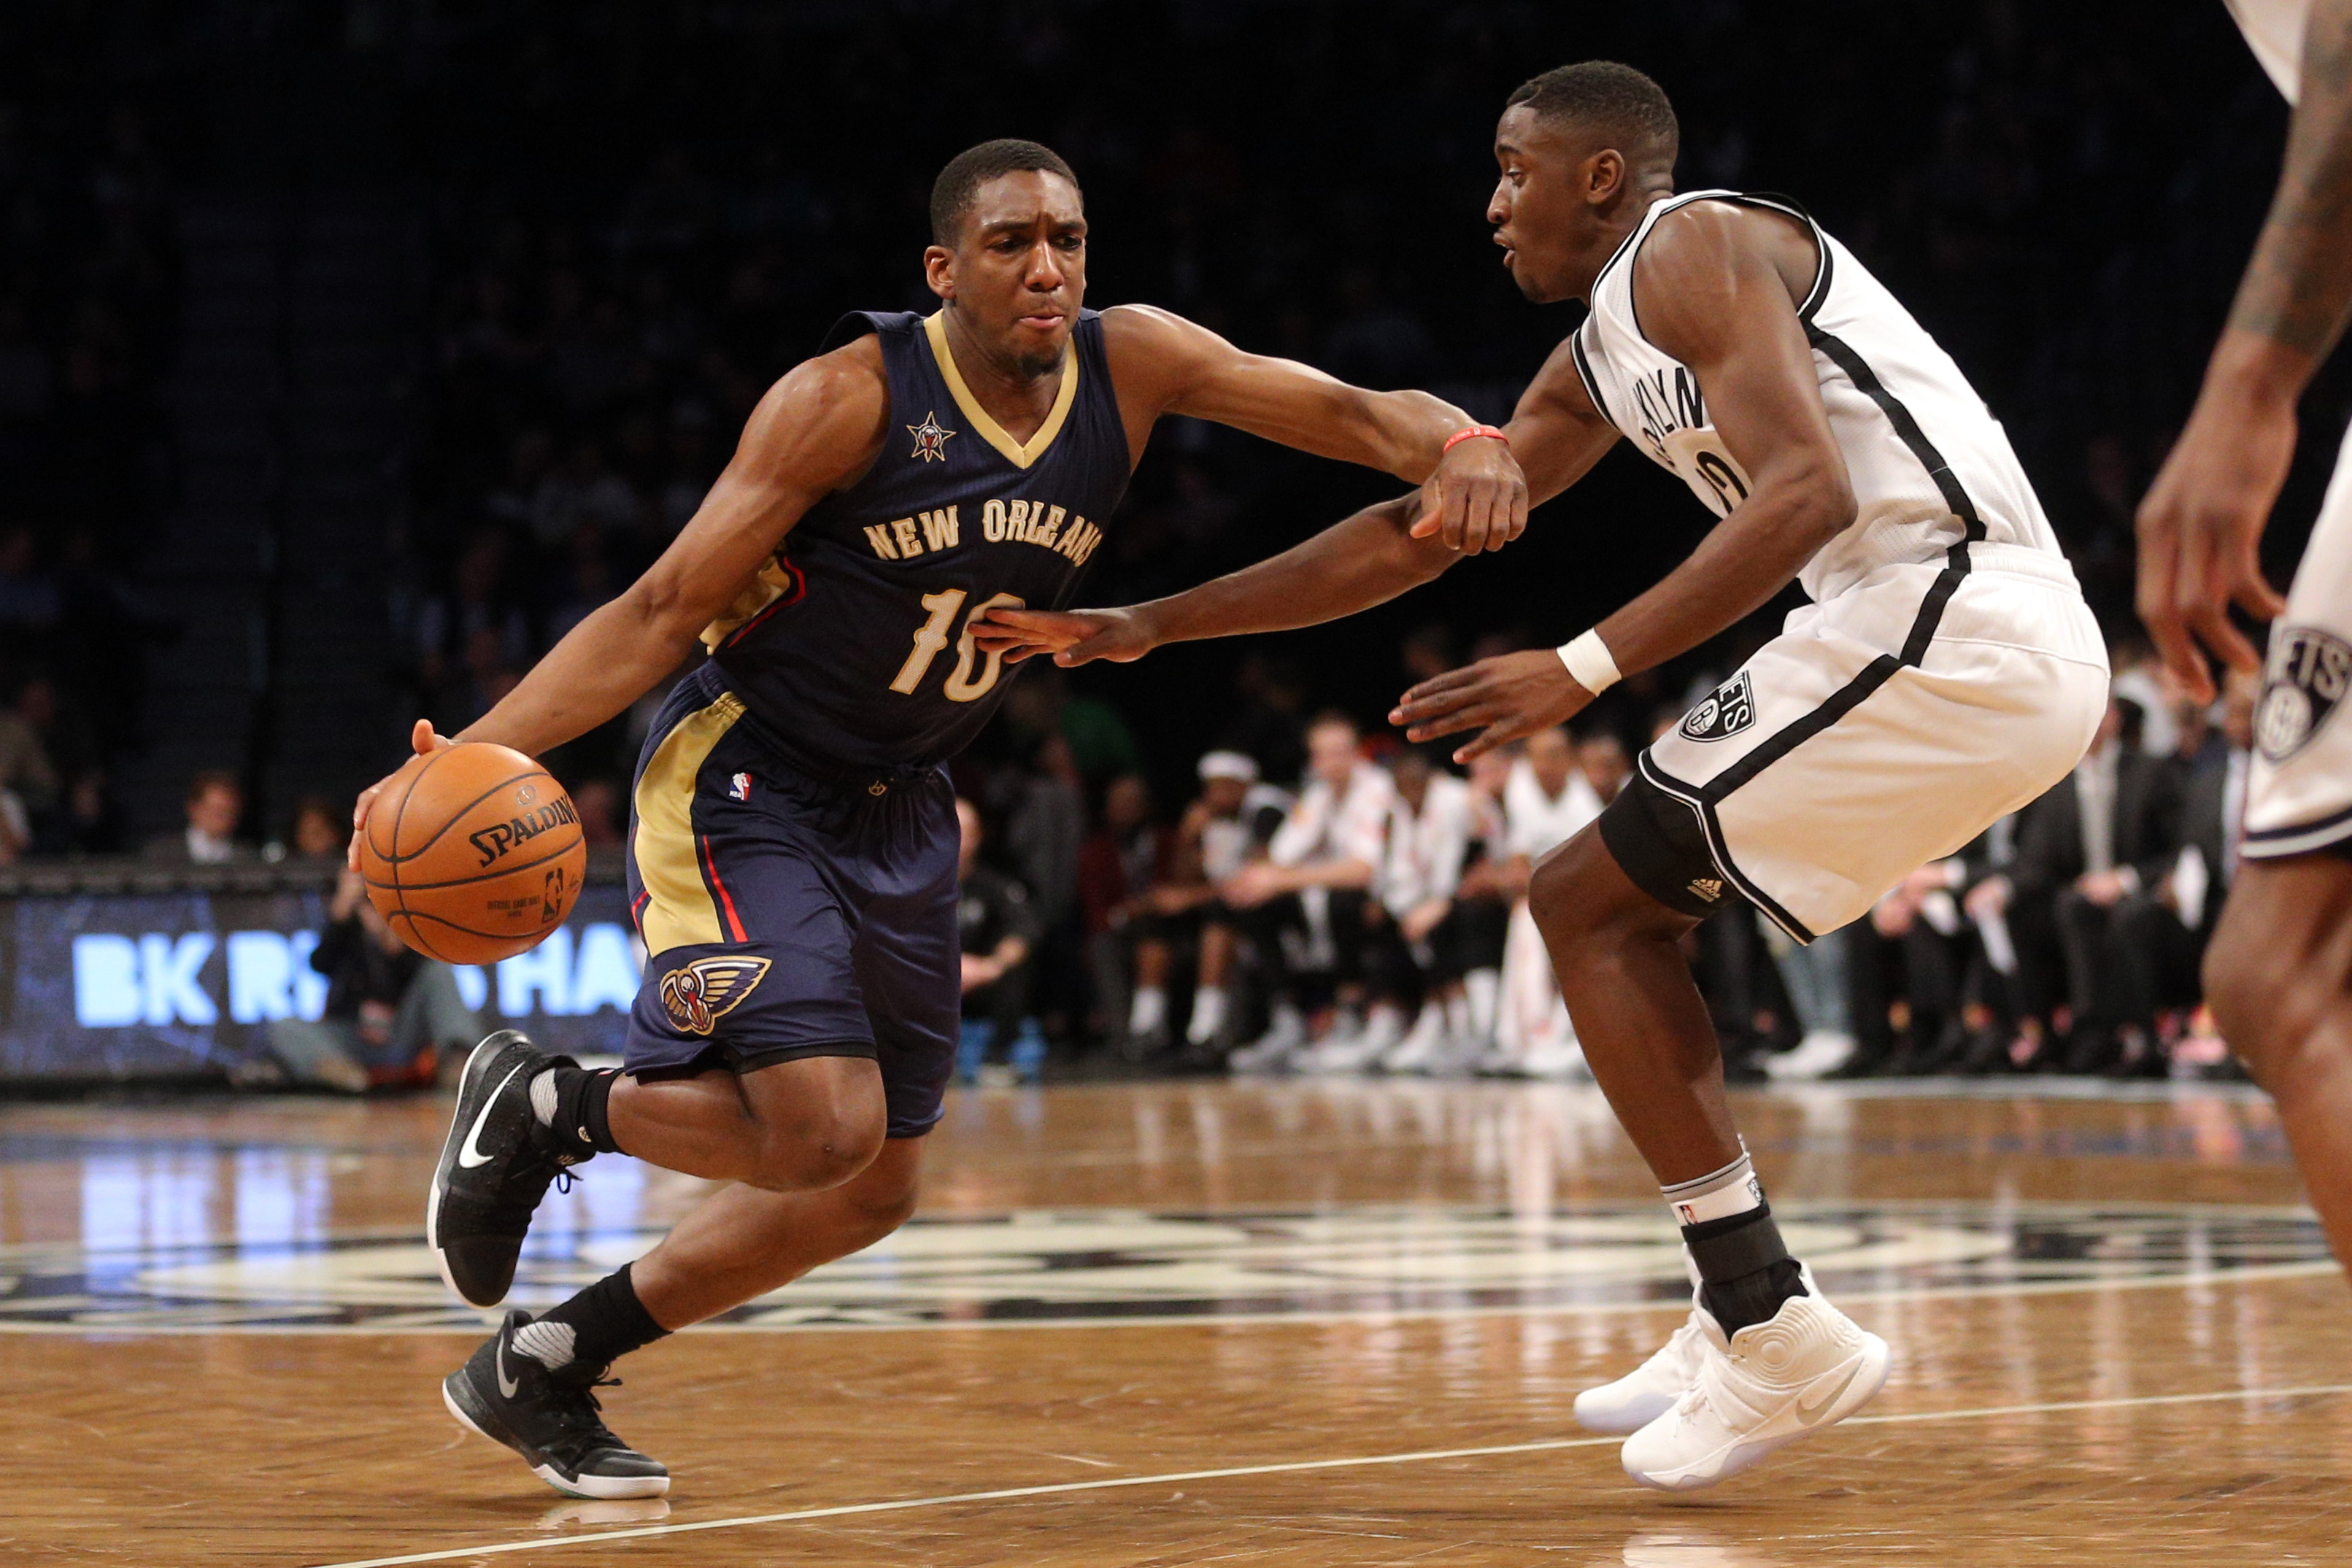 9806339-nba-new-orleans-pelicans-at-brooklyn-nets